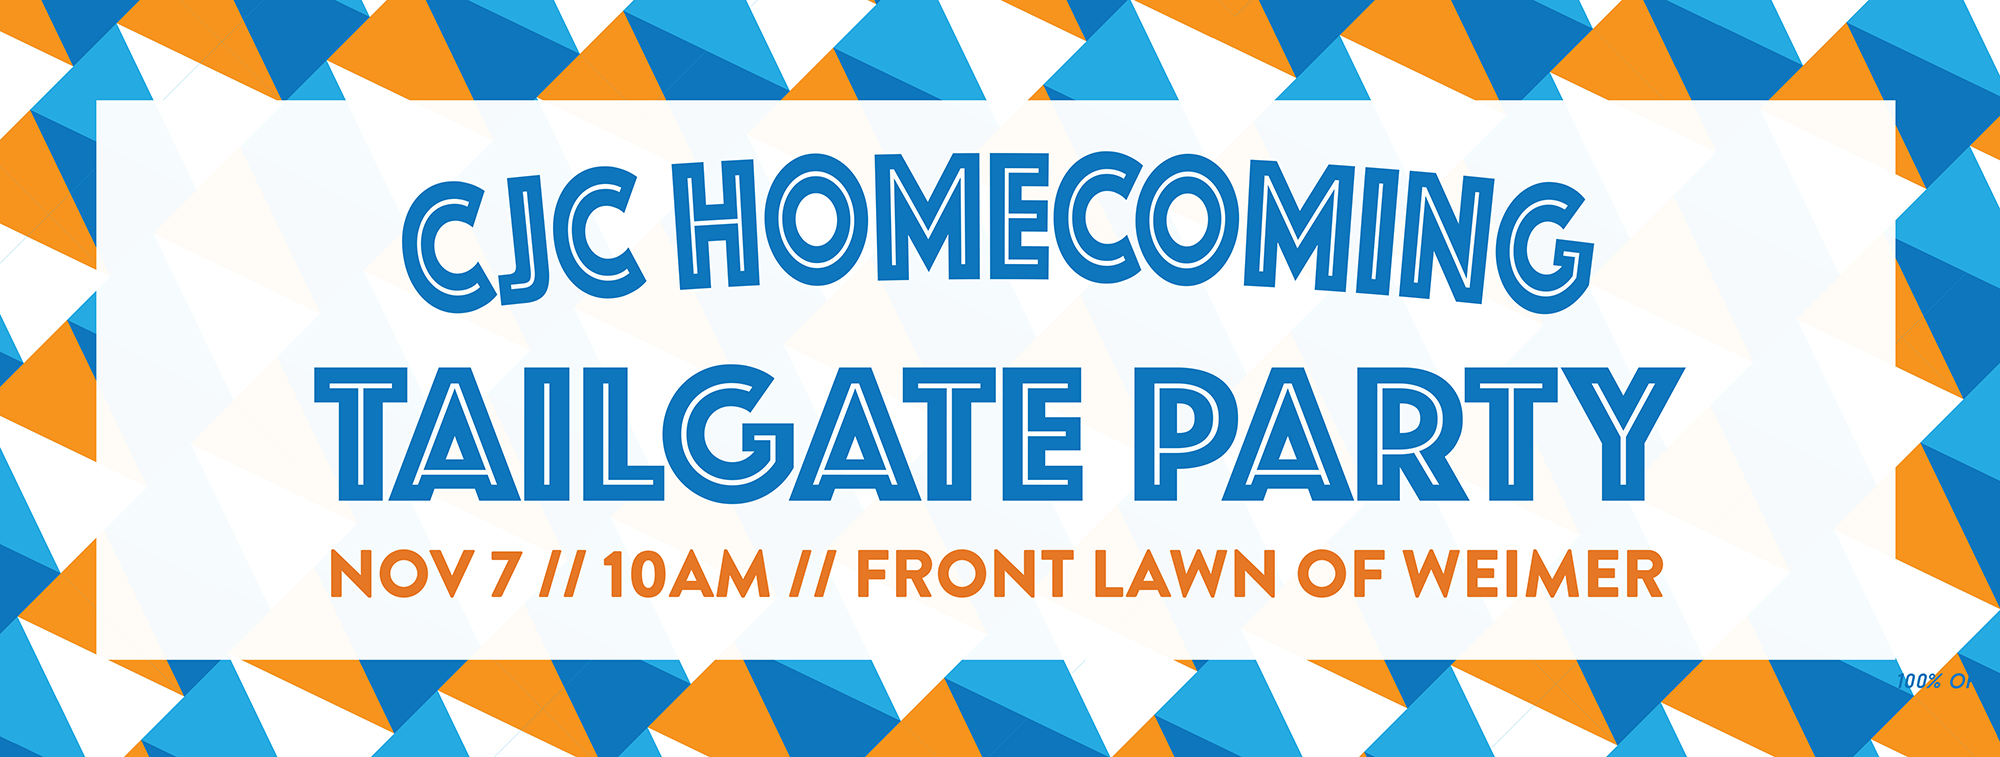 CJC Homecoming Tailgate Party